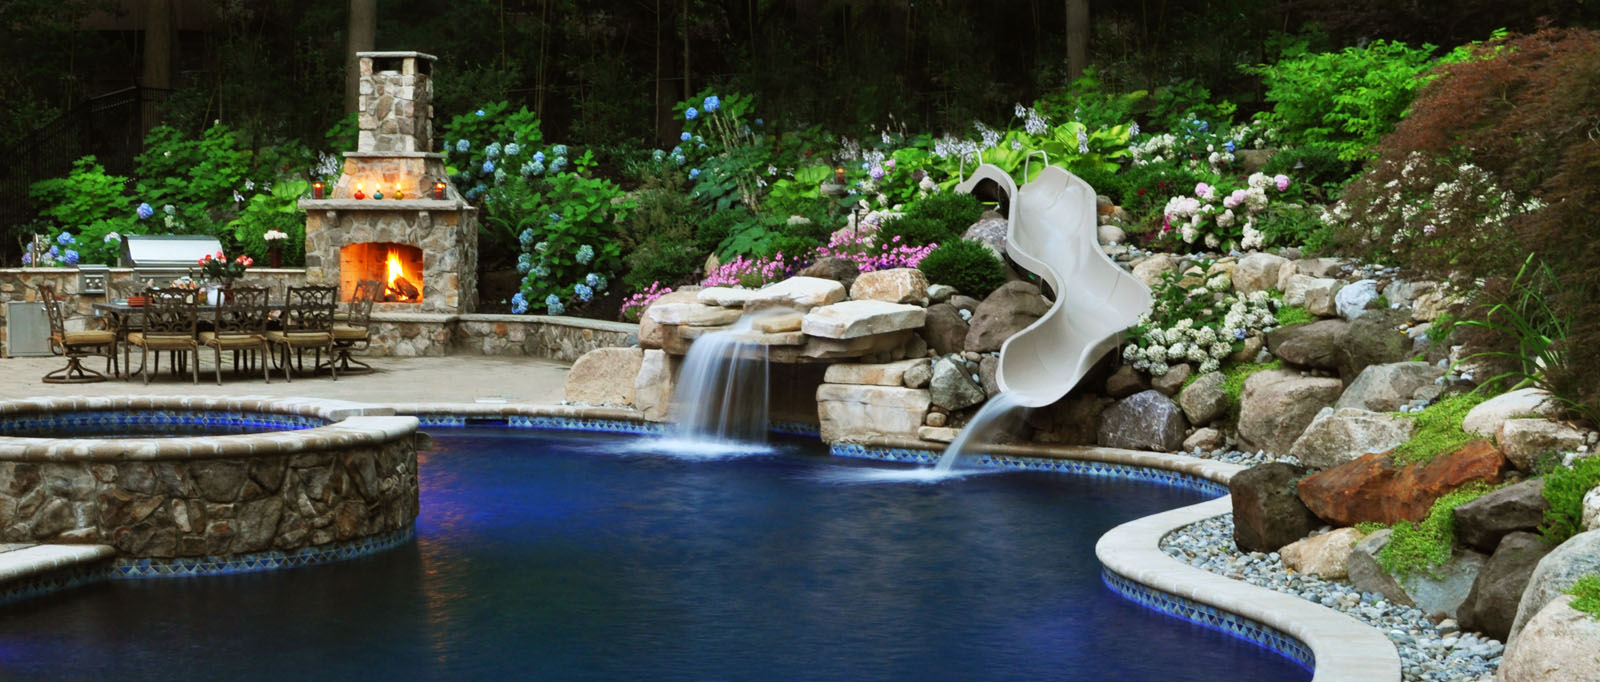 Beautiful pools and patios enchanting beautiful pools for Pool and patio designs